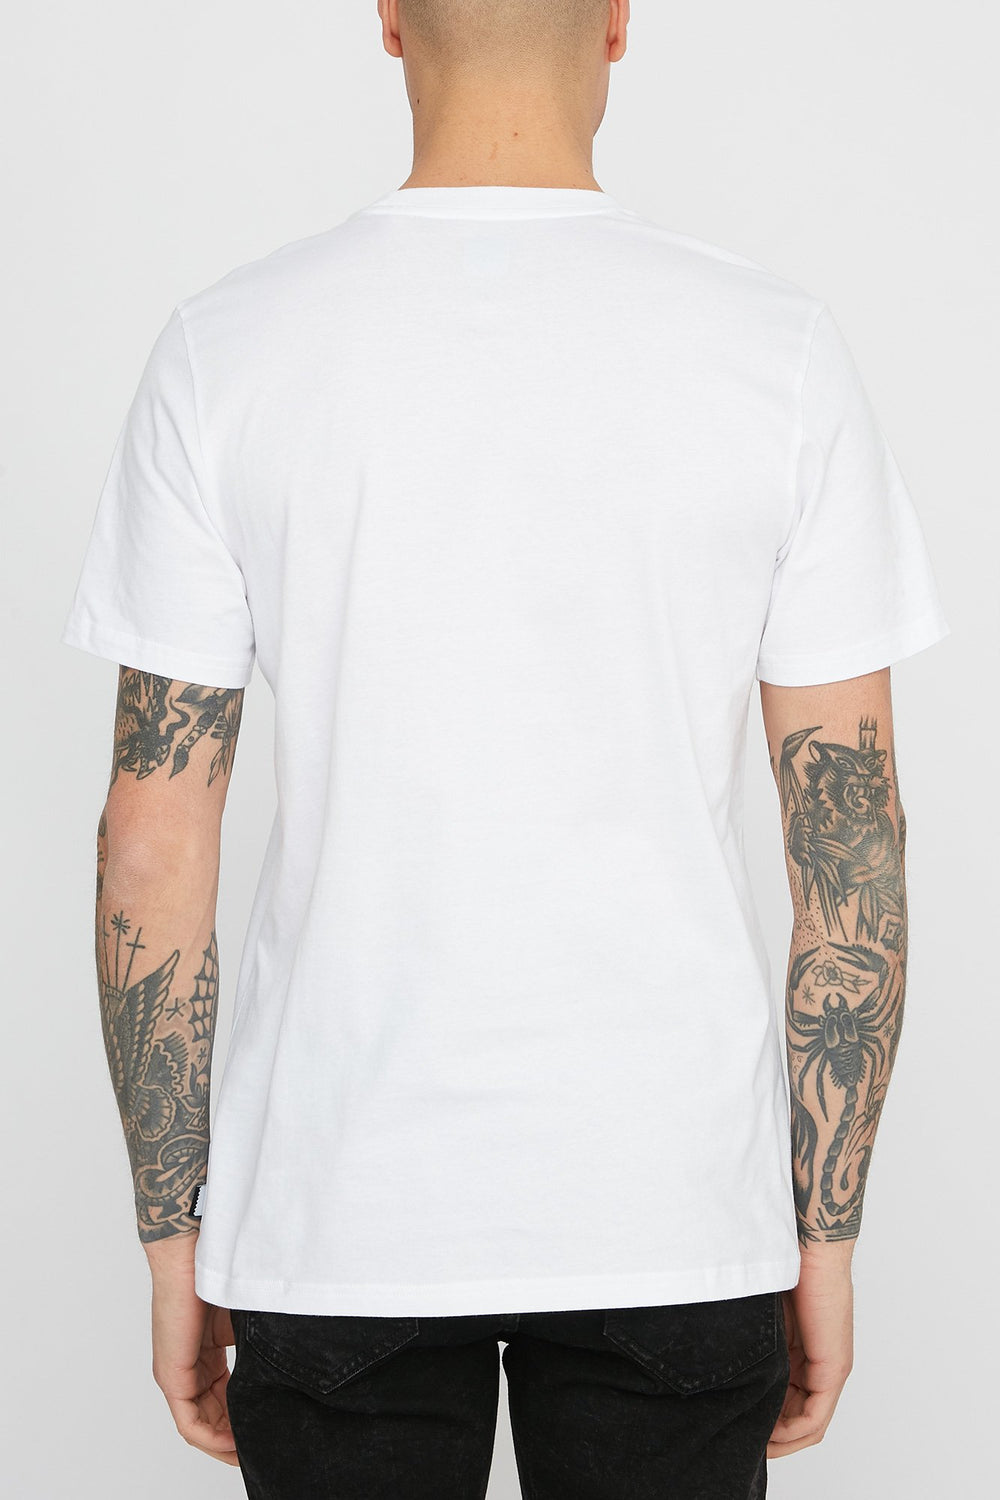 T Shirt Adidas Towning Homme Blanc